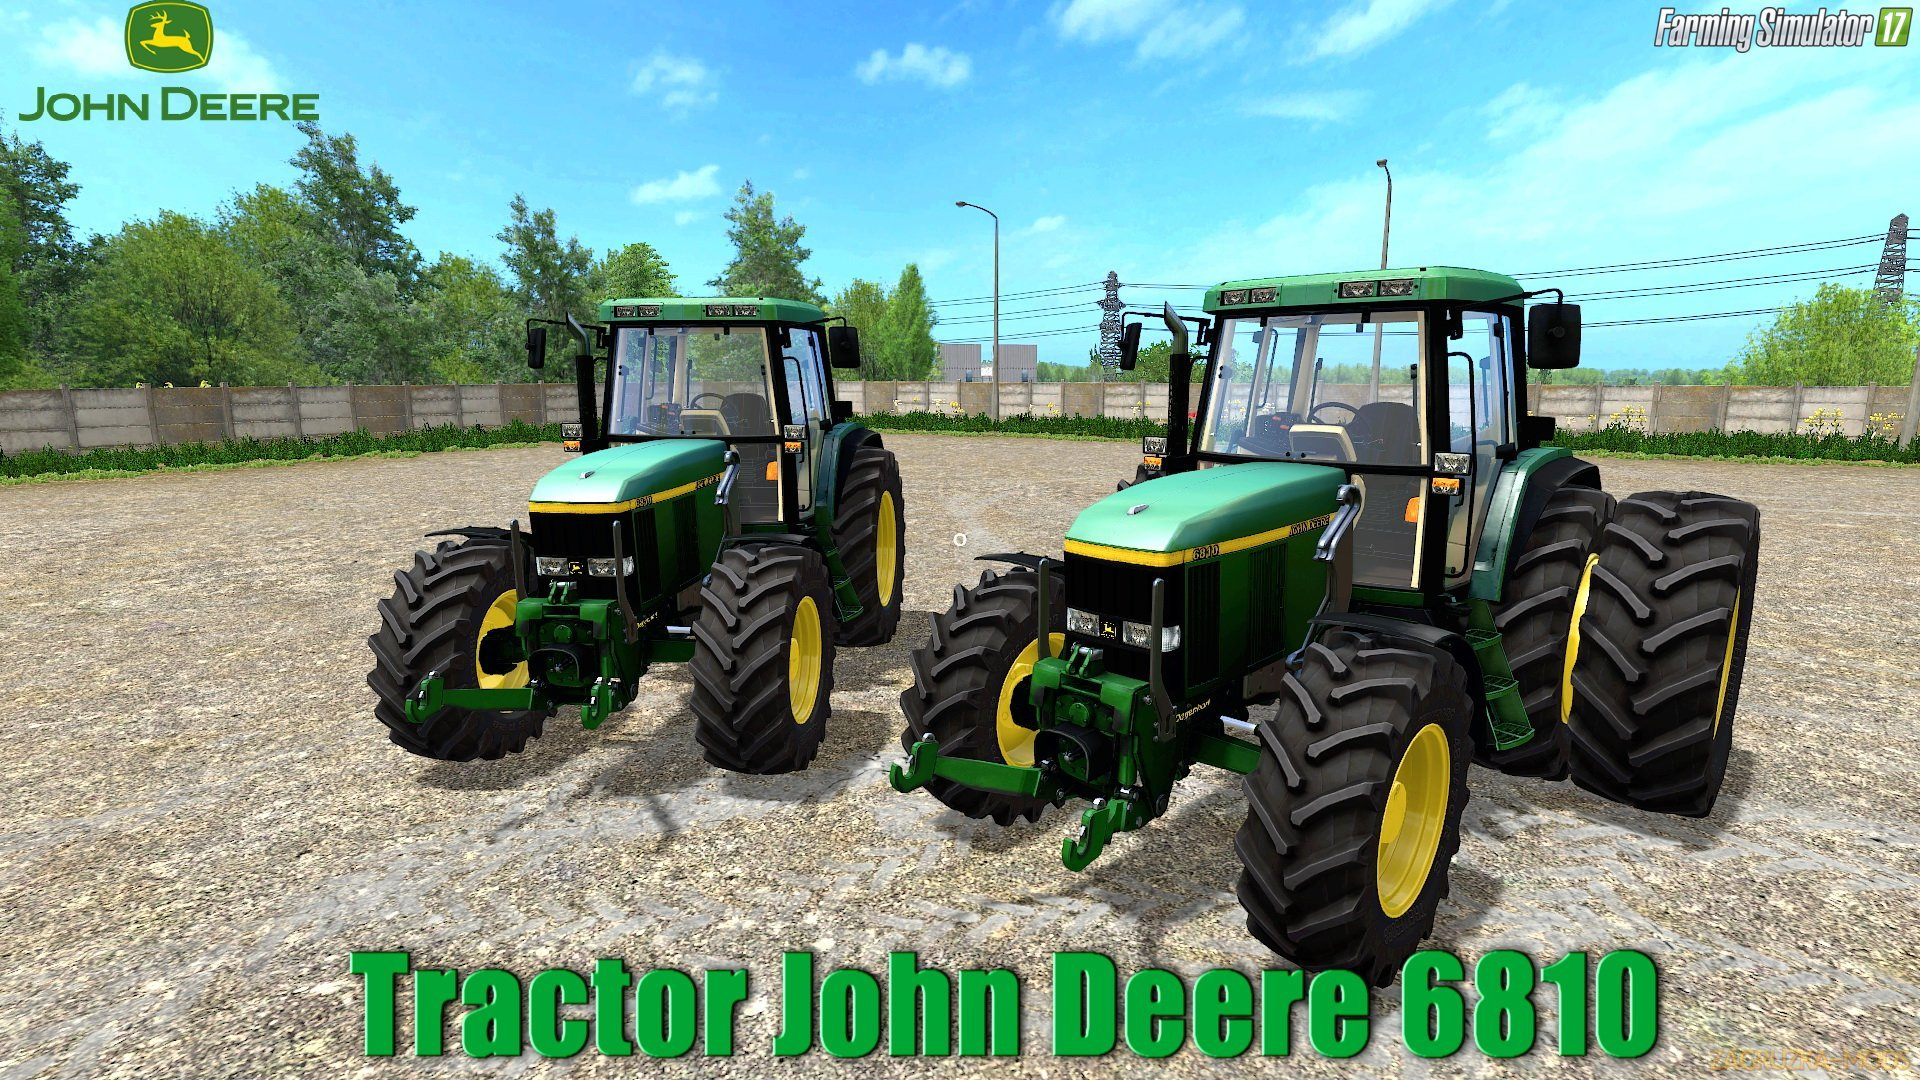 John Deere 6810 v1.0 by MB3D Modelling for FS 17